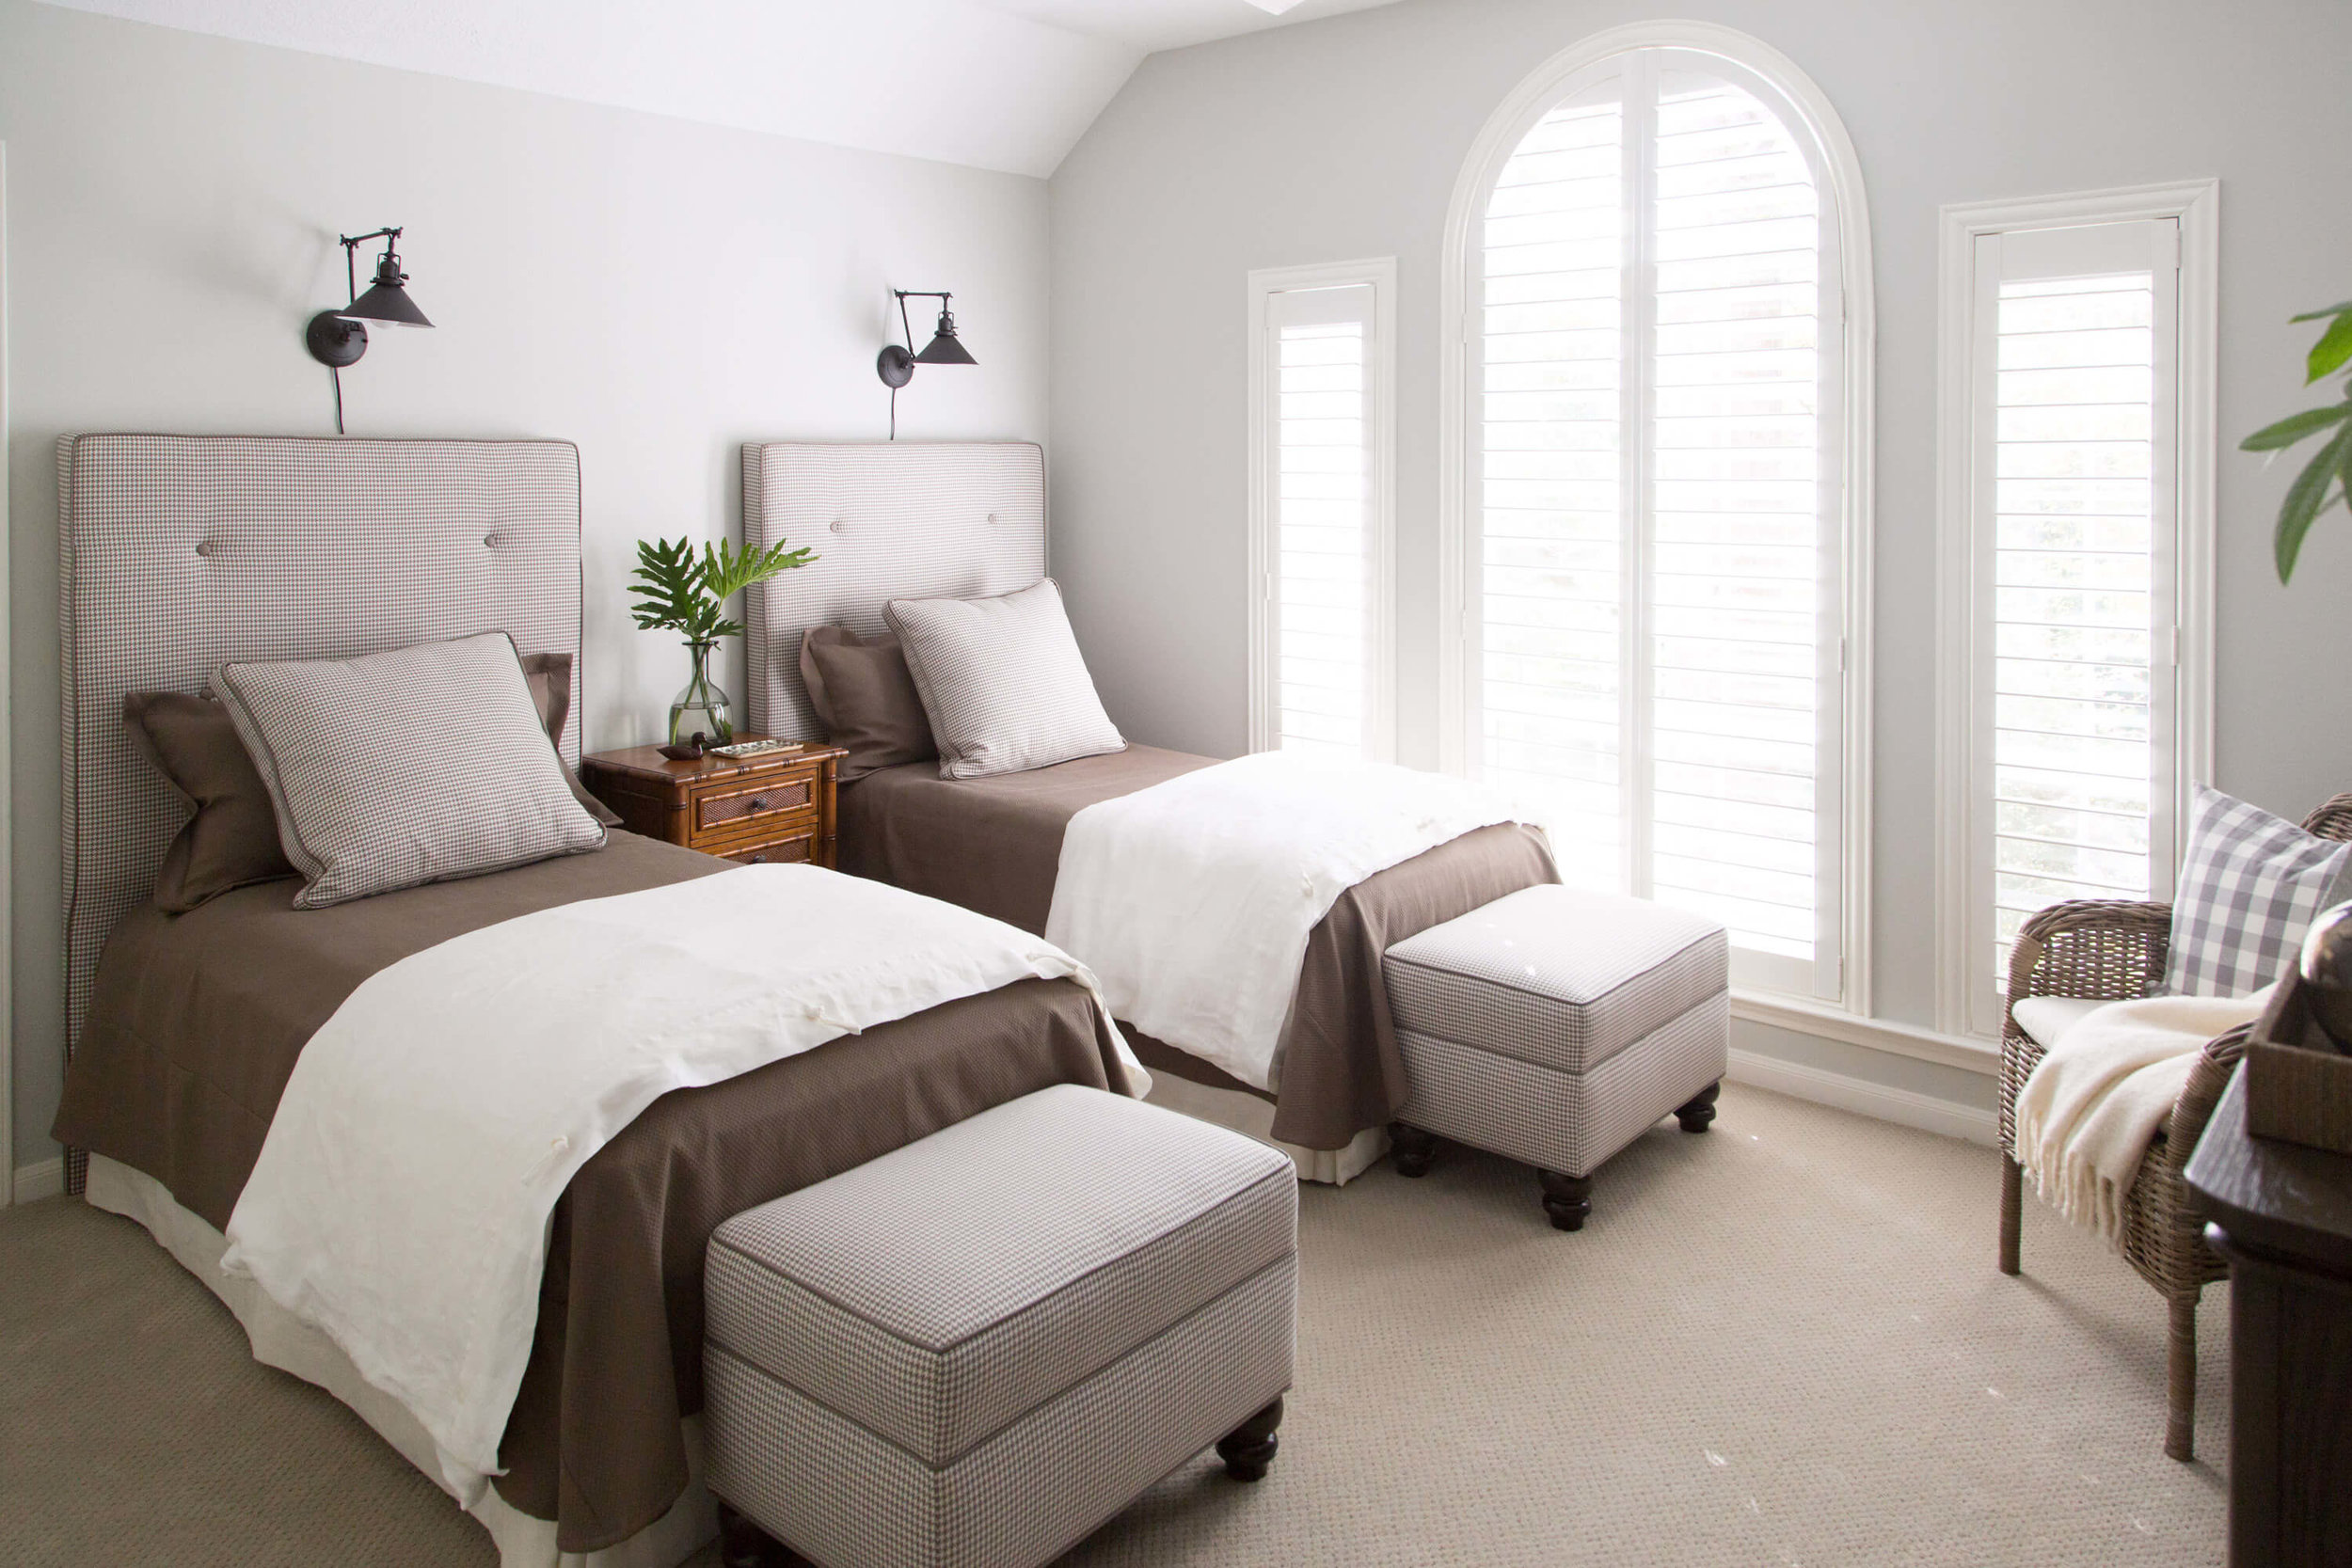 What gray paint color is best? Here are my favorites.....Twin bed guest room painted Sherwin Williams Conservative Gray | Designer: Carla Aston, Photographer: Tori Aston #conservativegray #paintcolors